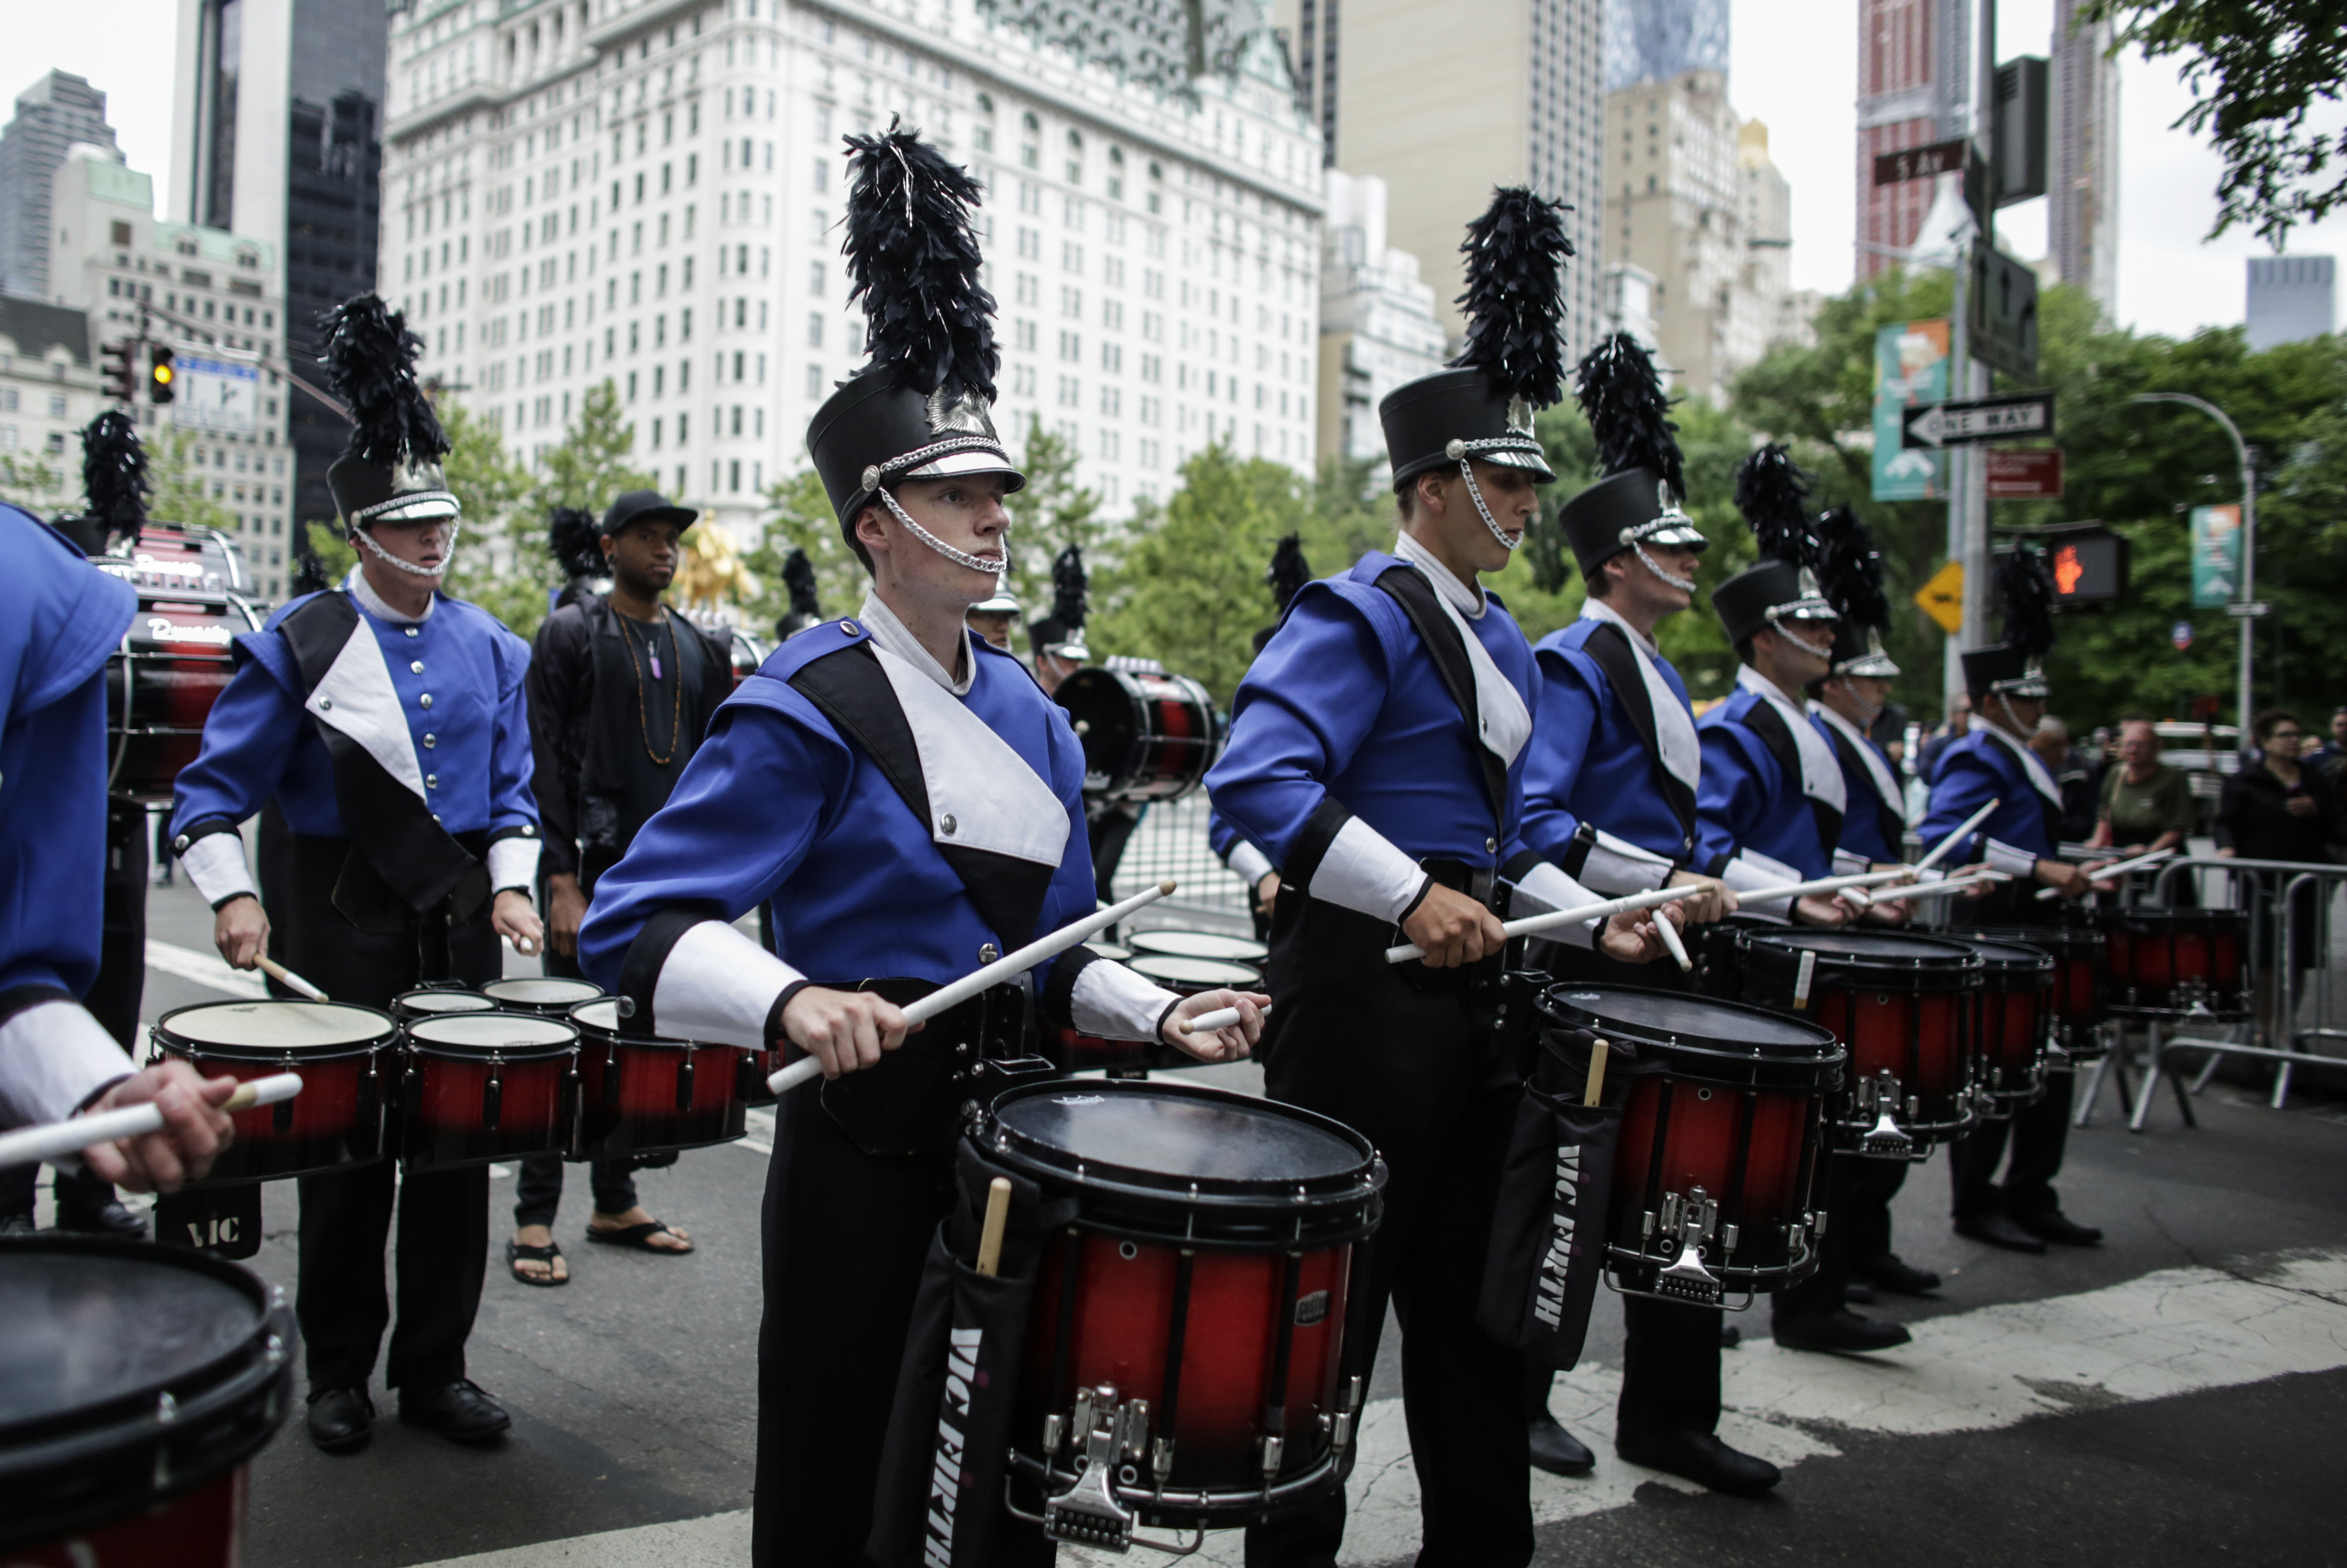 NEW YORK, NY - A marching band performs during the annual Celebrate Israel Parade on June 3, 2018 in New York City. (Kena Betancur/Getty Images/AFP)